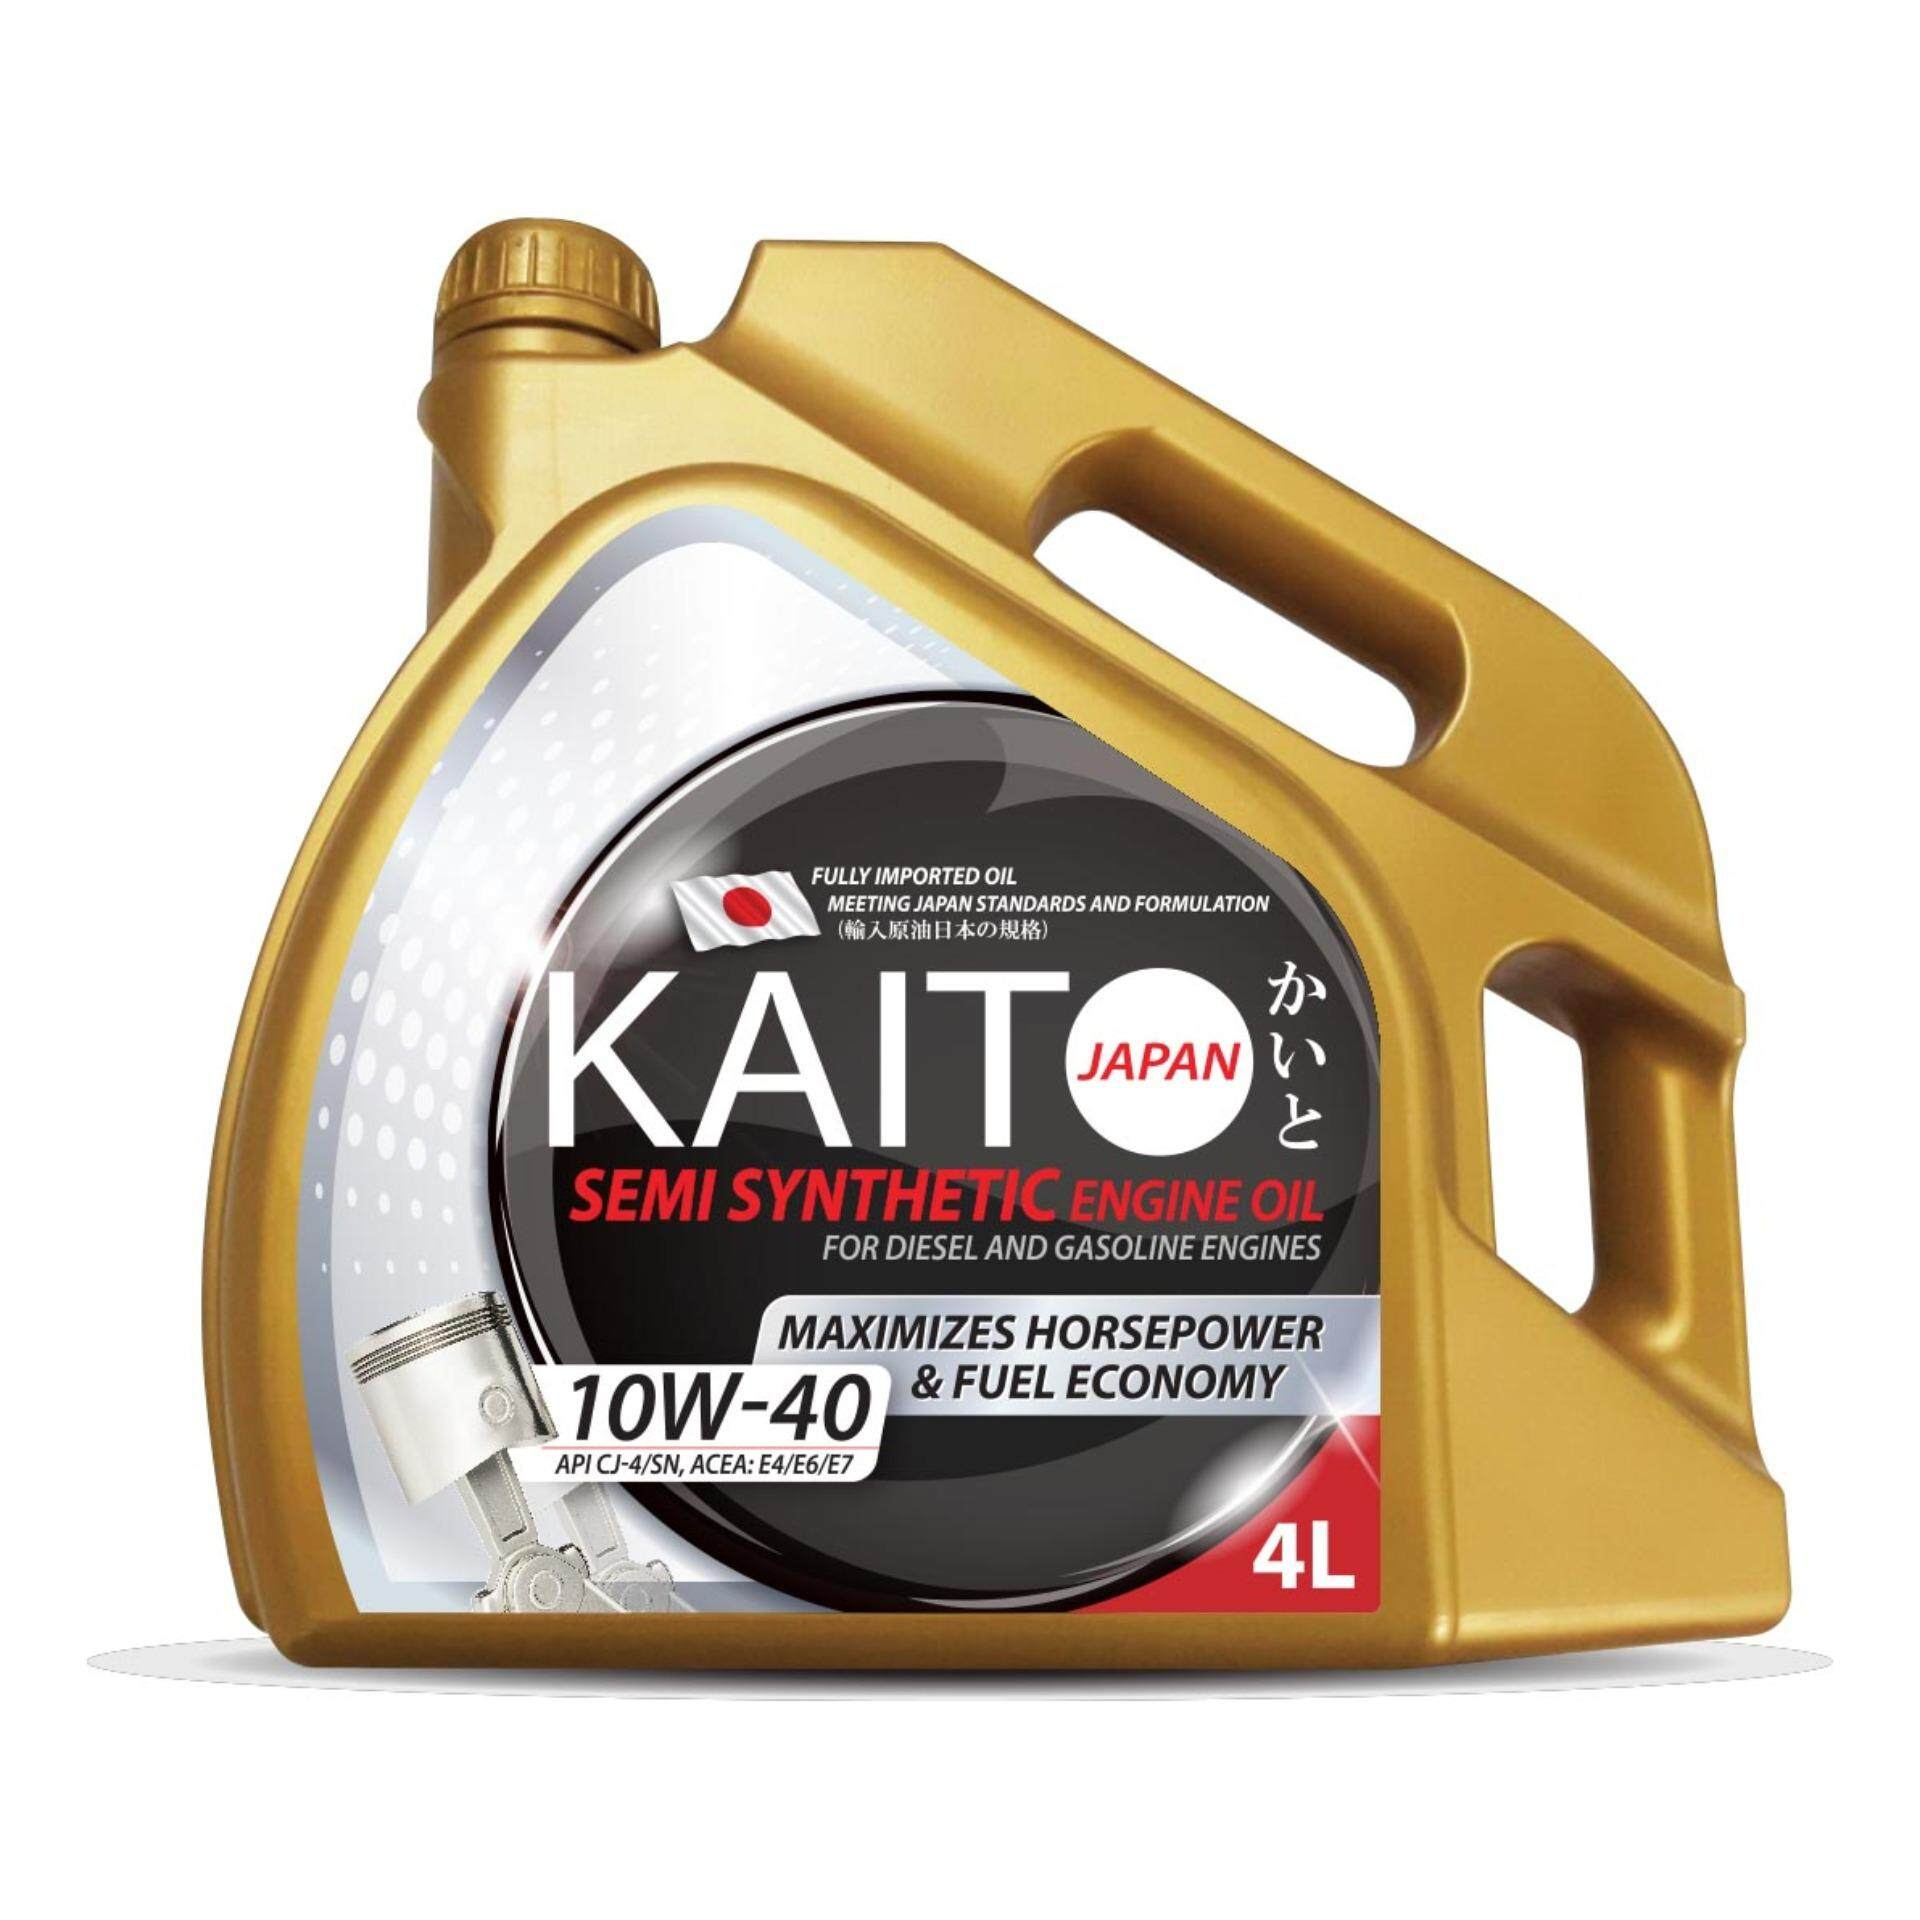 Kaito Japan 10w40 Cj-4/sn Semi Synthetic Engine Oil - 4 Liters [free Shipping] By The Climb Plt..